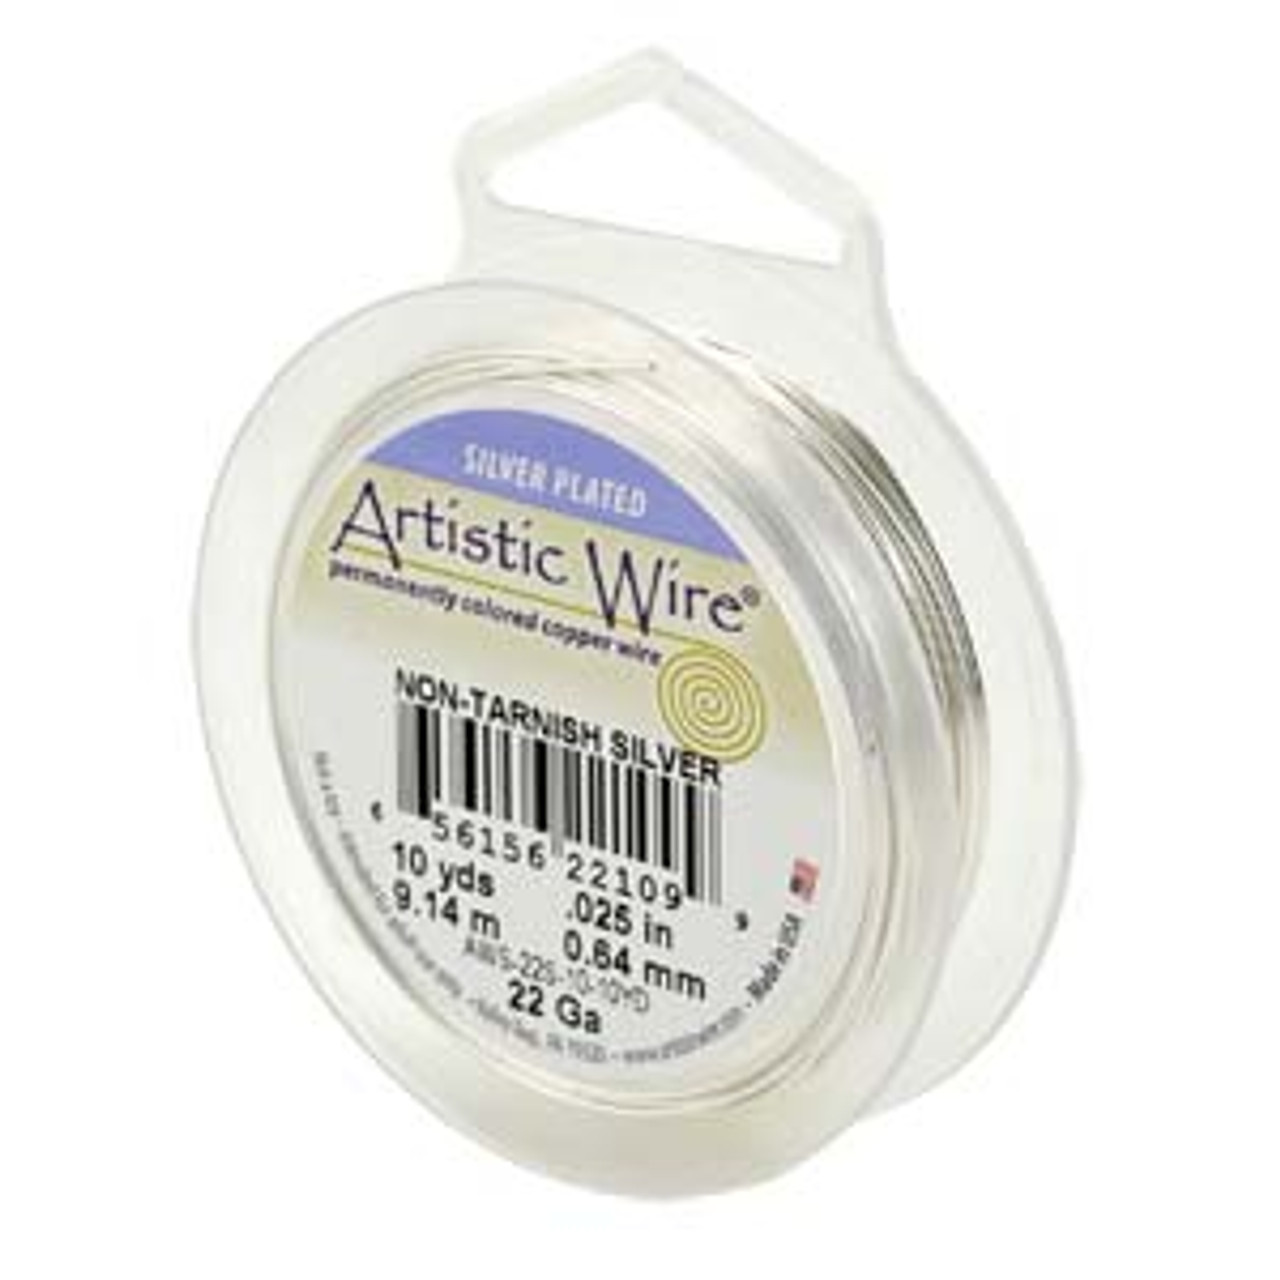 18 Ga. Silver Artistic Wire  -  20ft